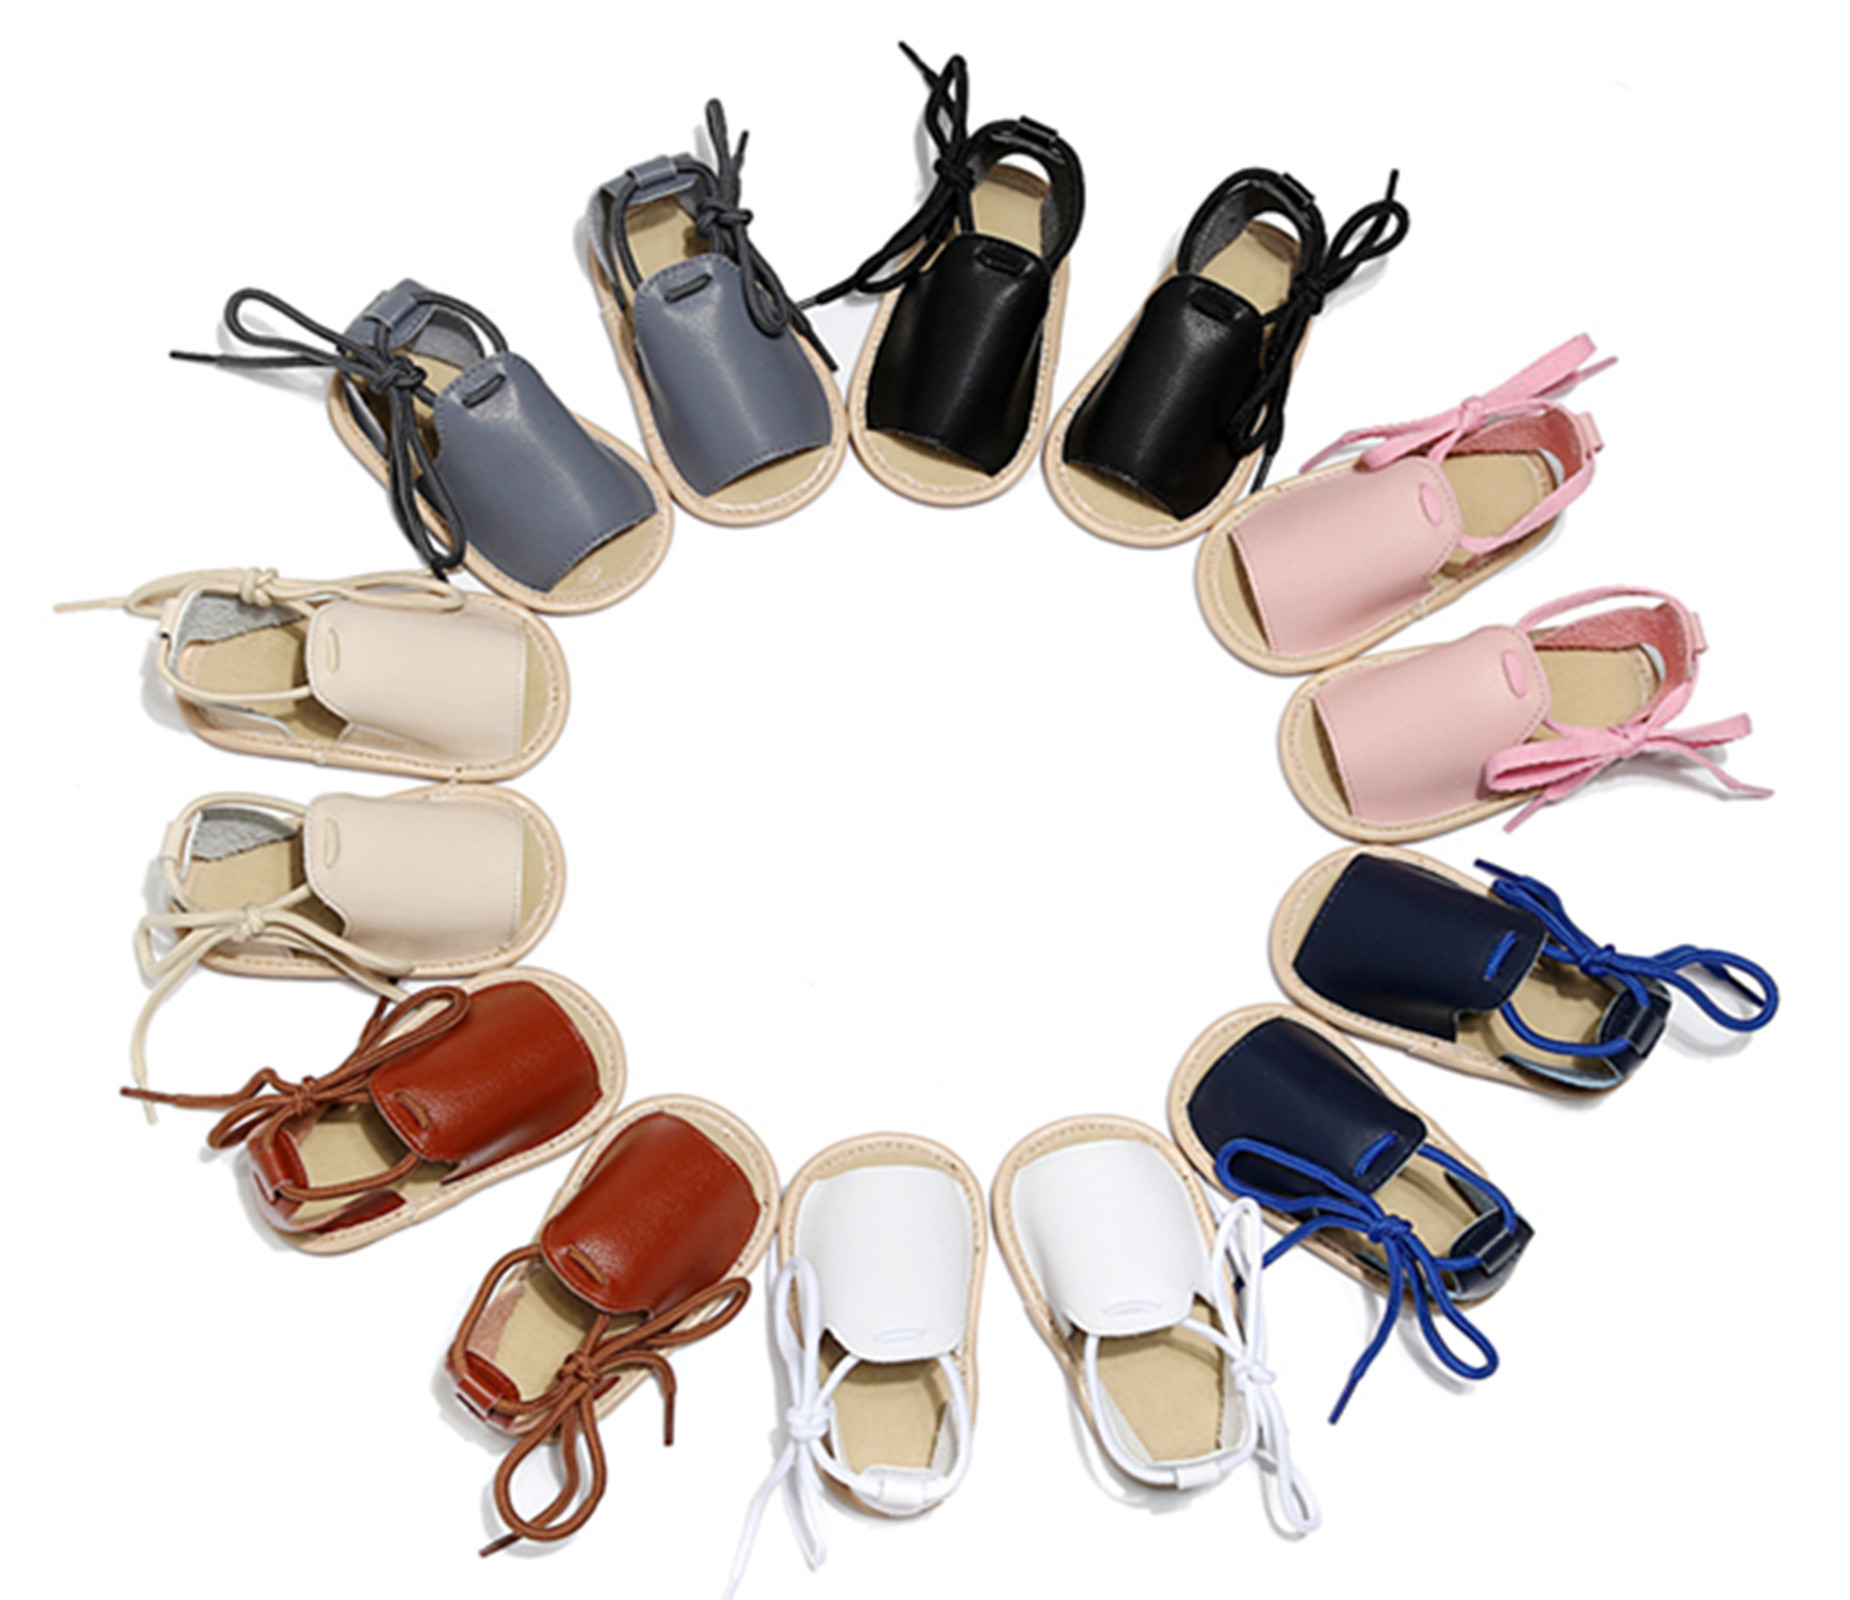 Summer New Baby Boy Sandals Fashion Baby Girl Moccasins Infant Toddler First Walkers Baby Leather Clogs Soft Sole Crib Shoe